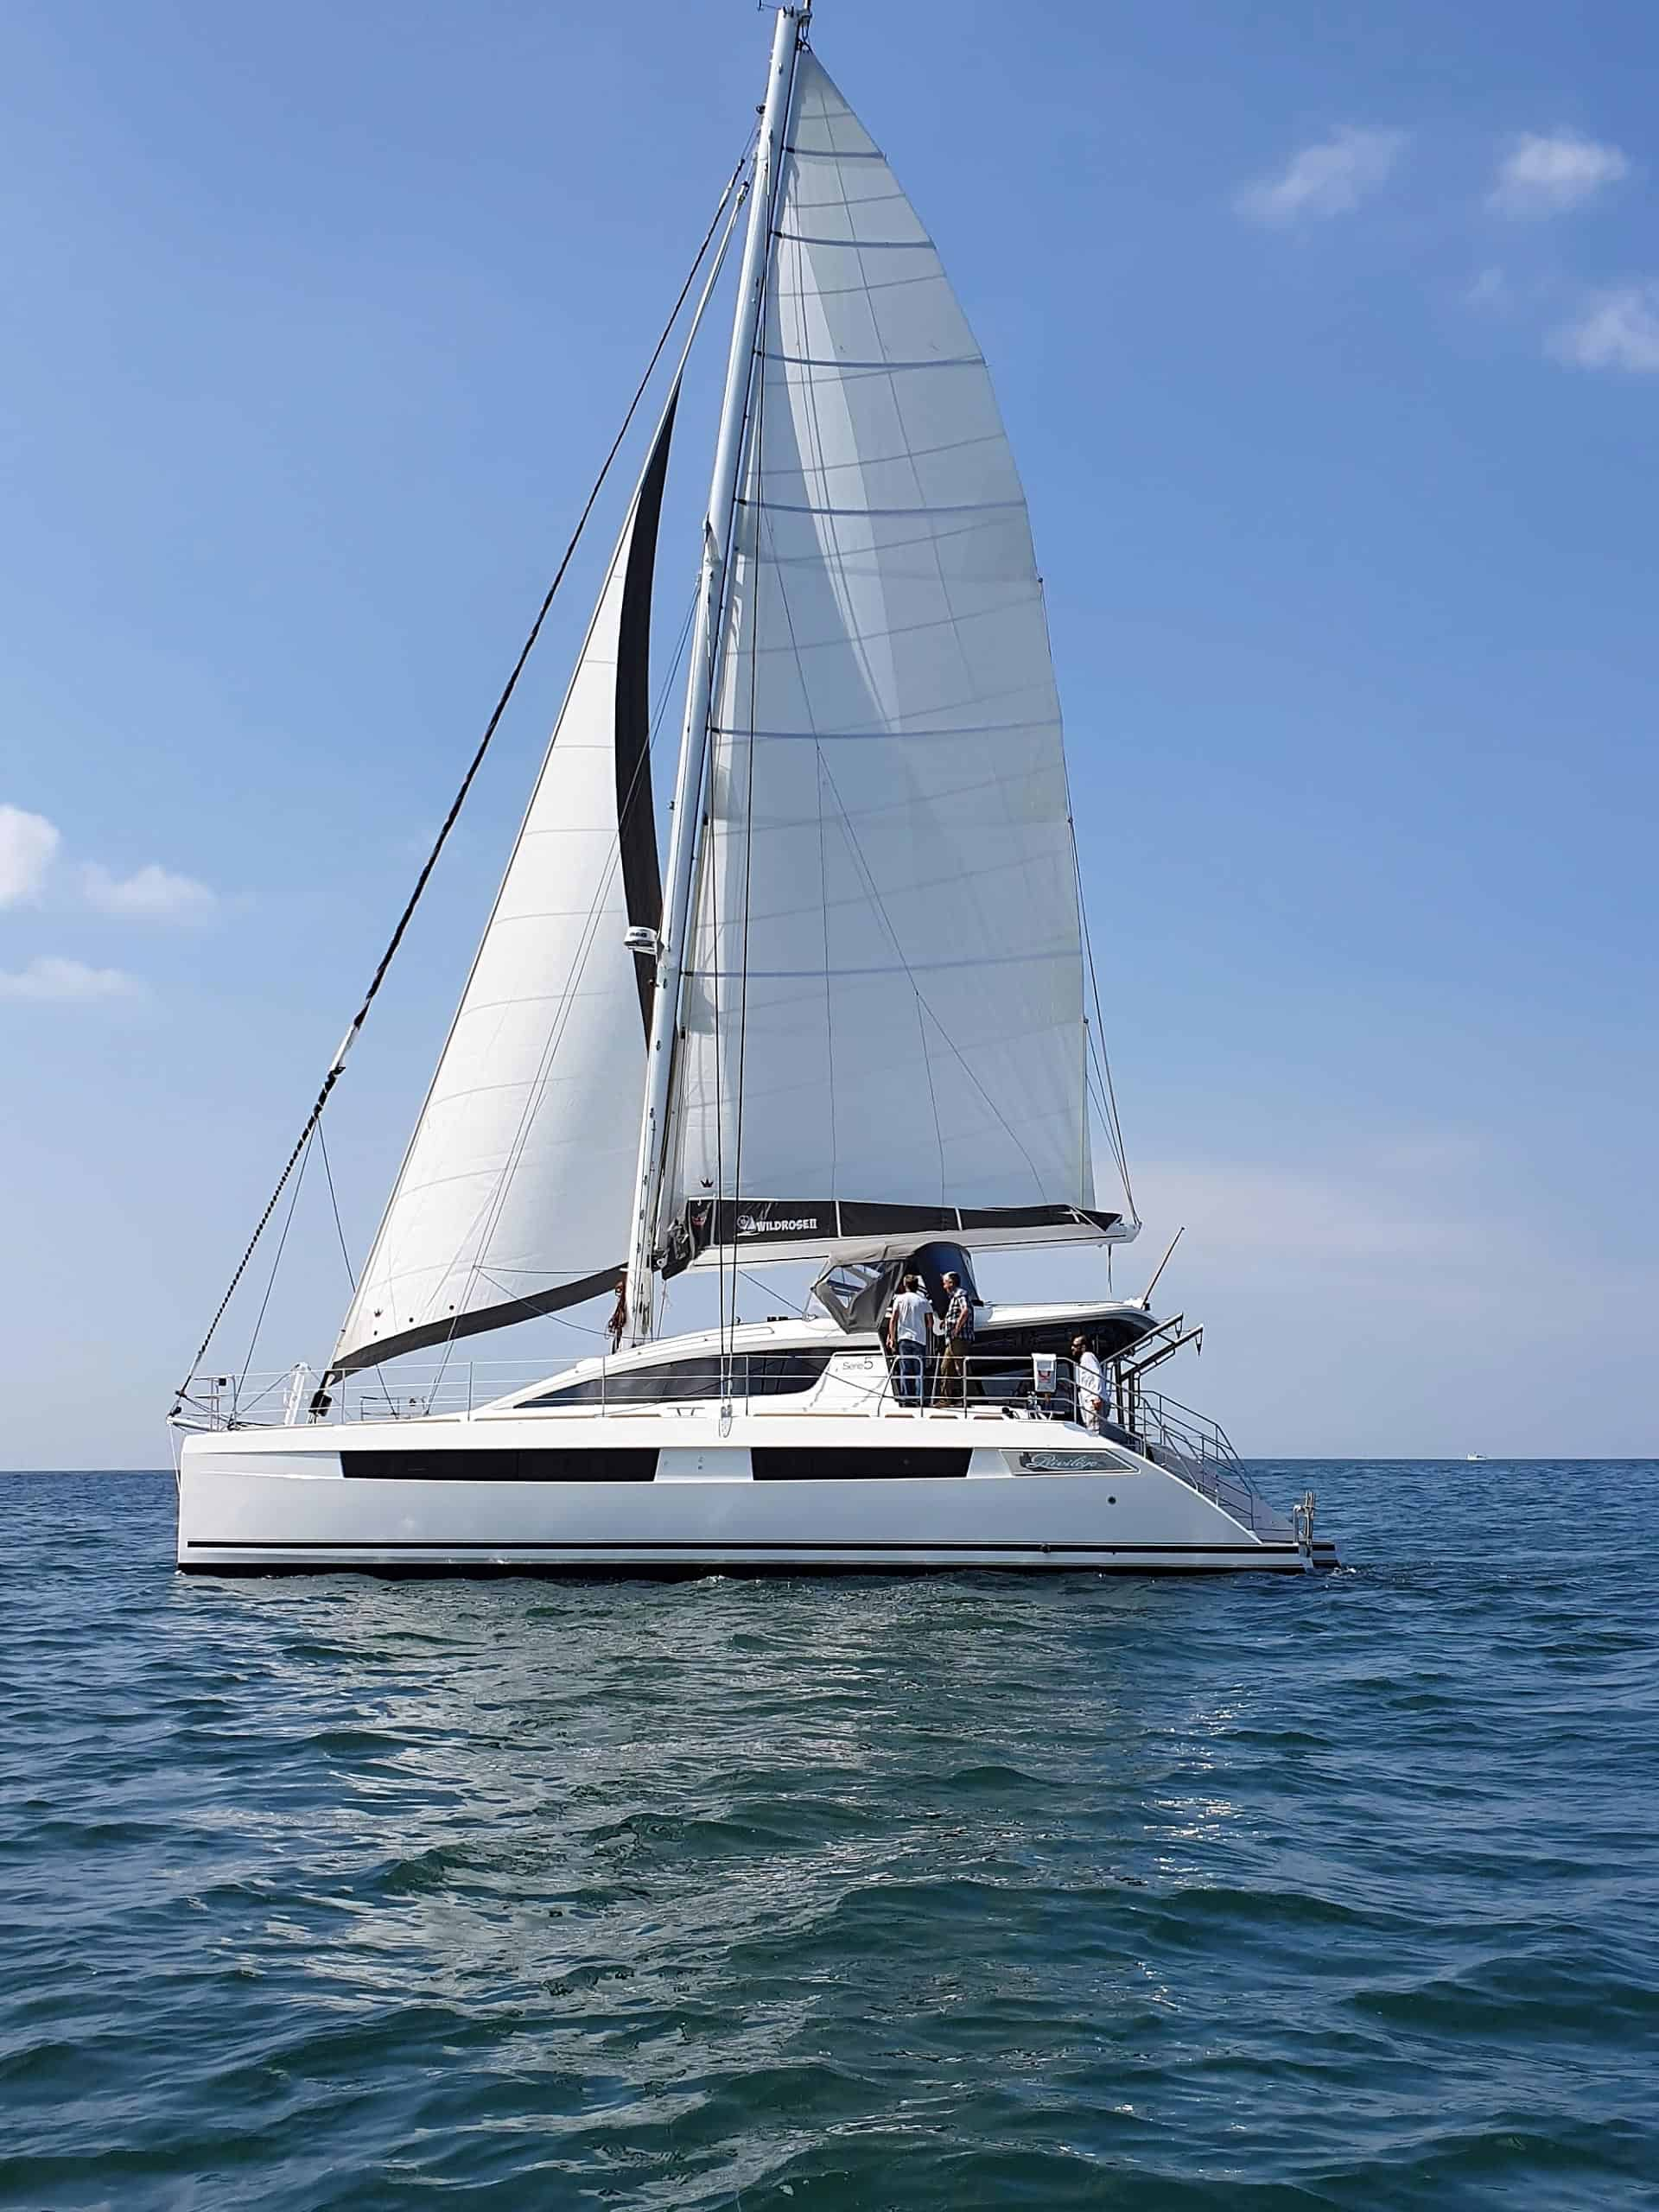 Rob's first sail on Wild Rose II